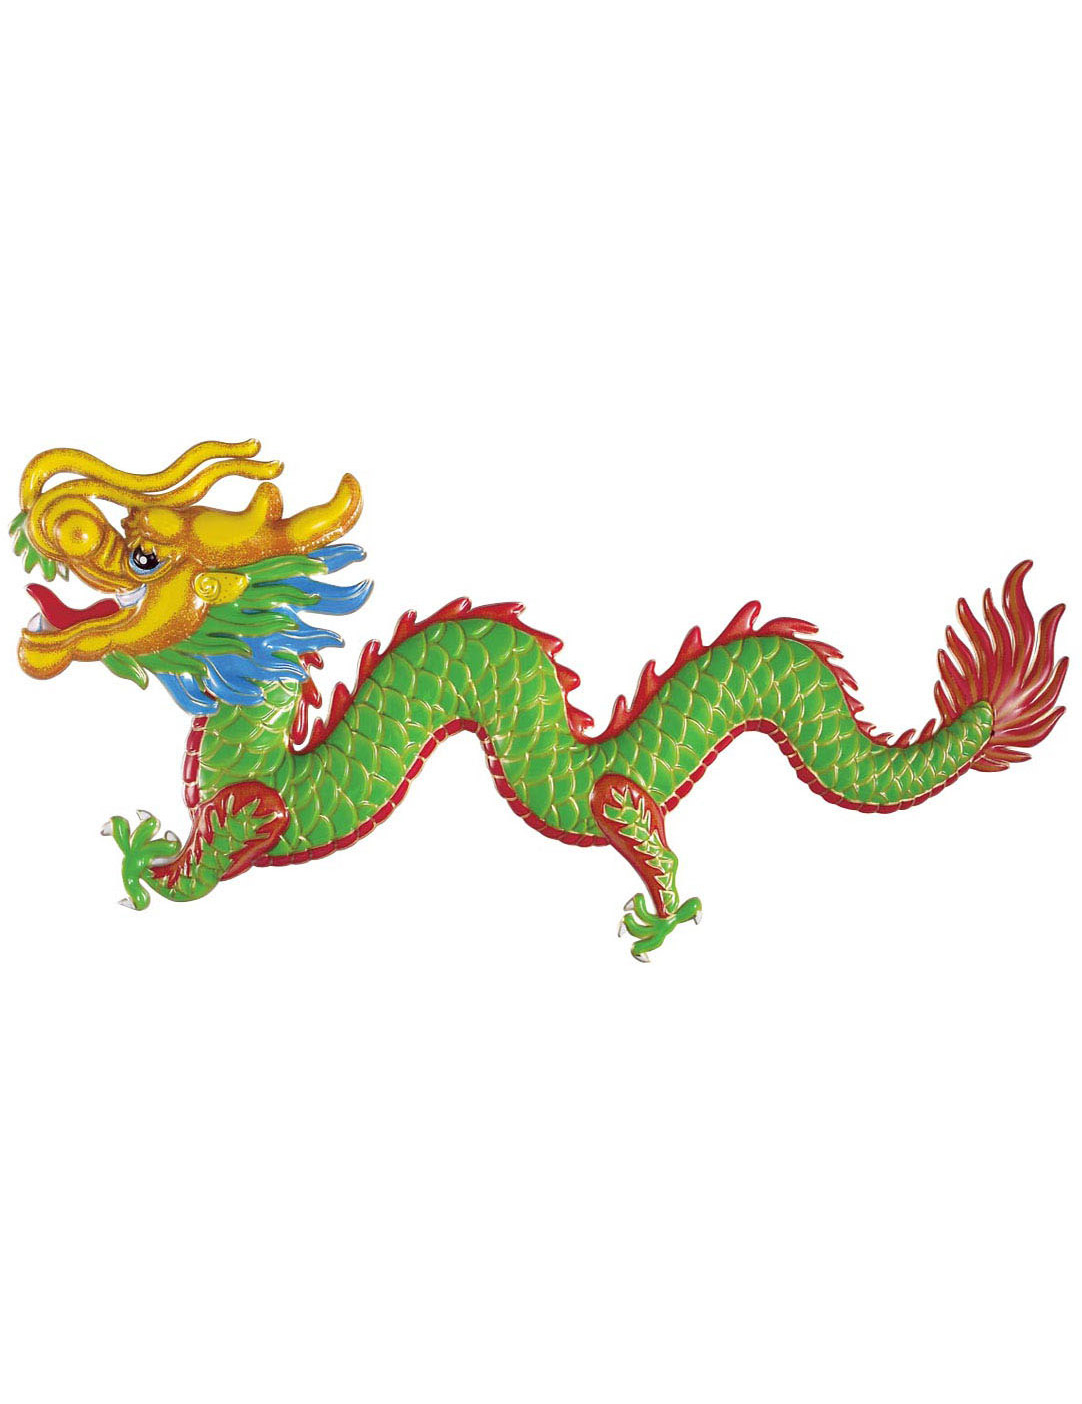 D coration dragon nouvel an chinois 100 x 48 cm for Decoration nouvel an chinois